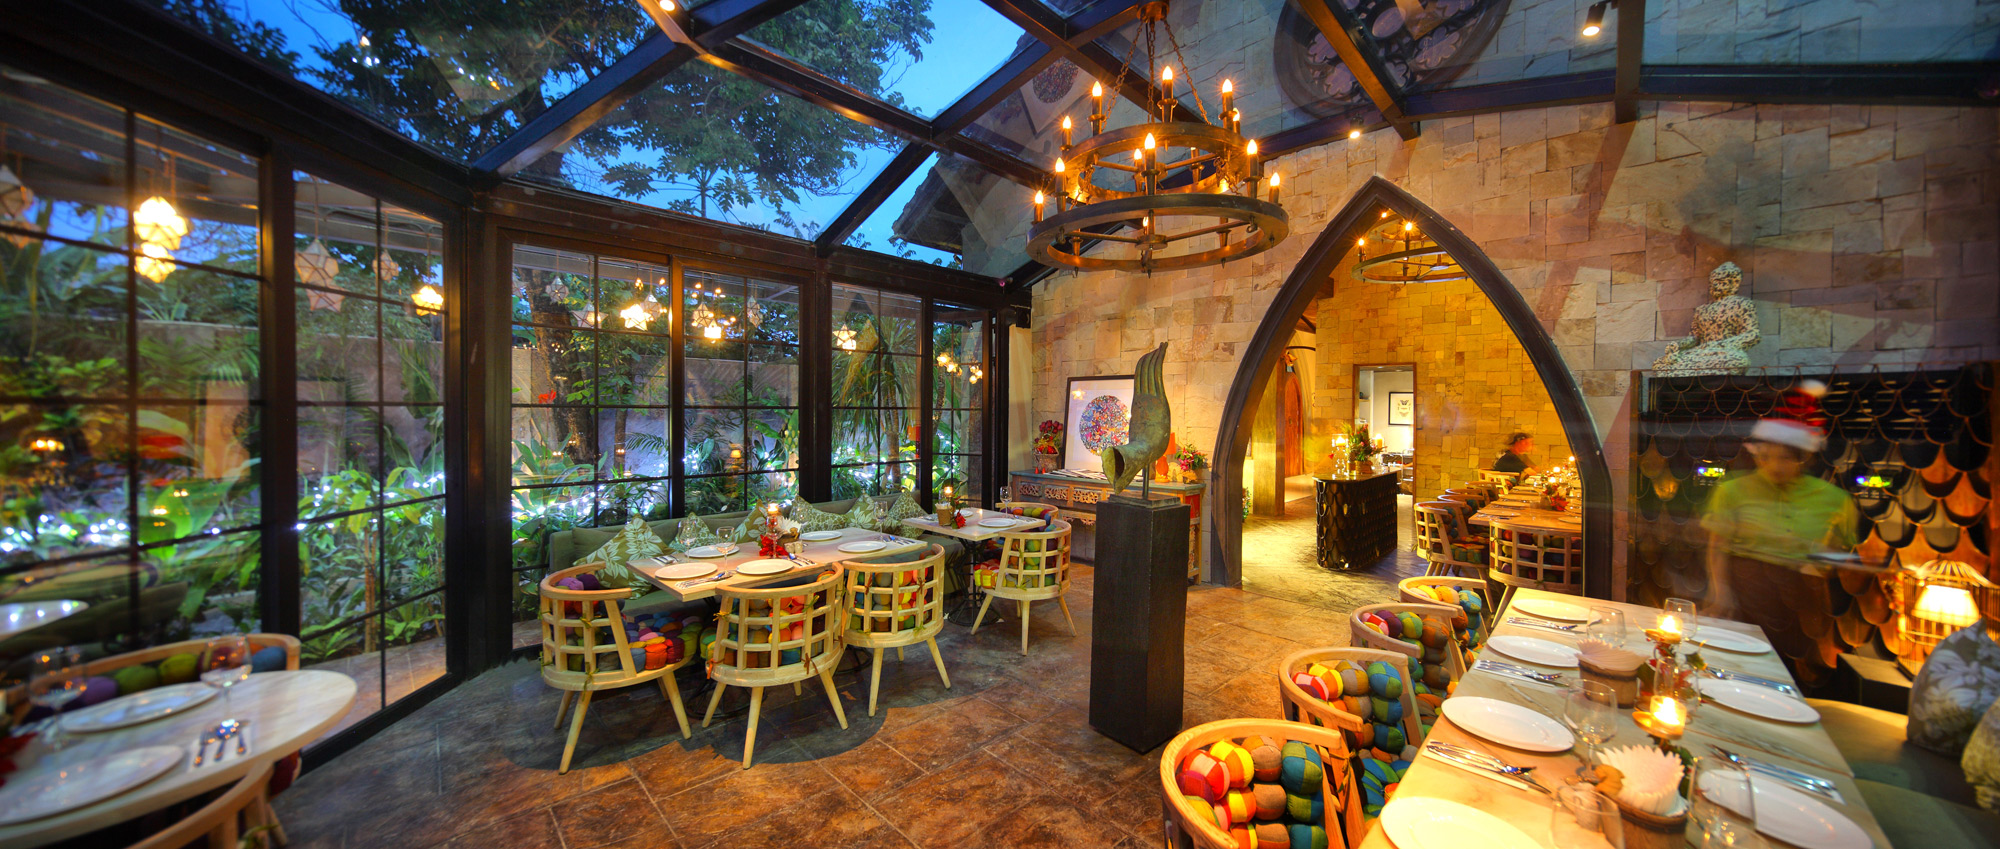 Themed Restaurants Of Bali That Let You Dine With Gorgeous